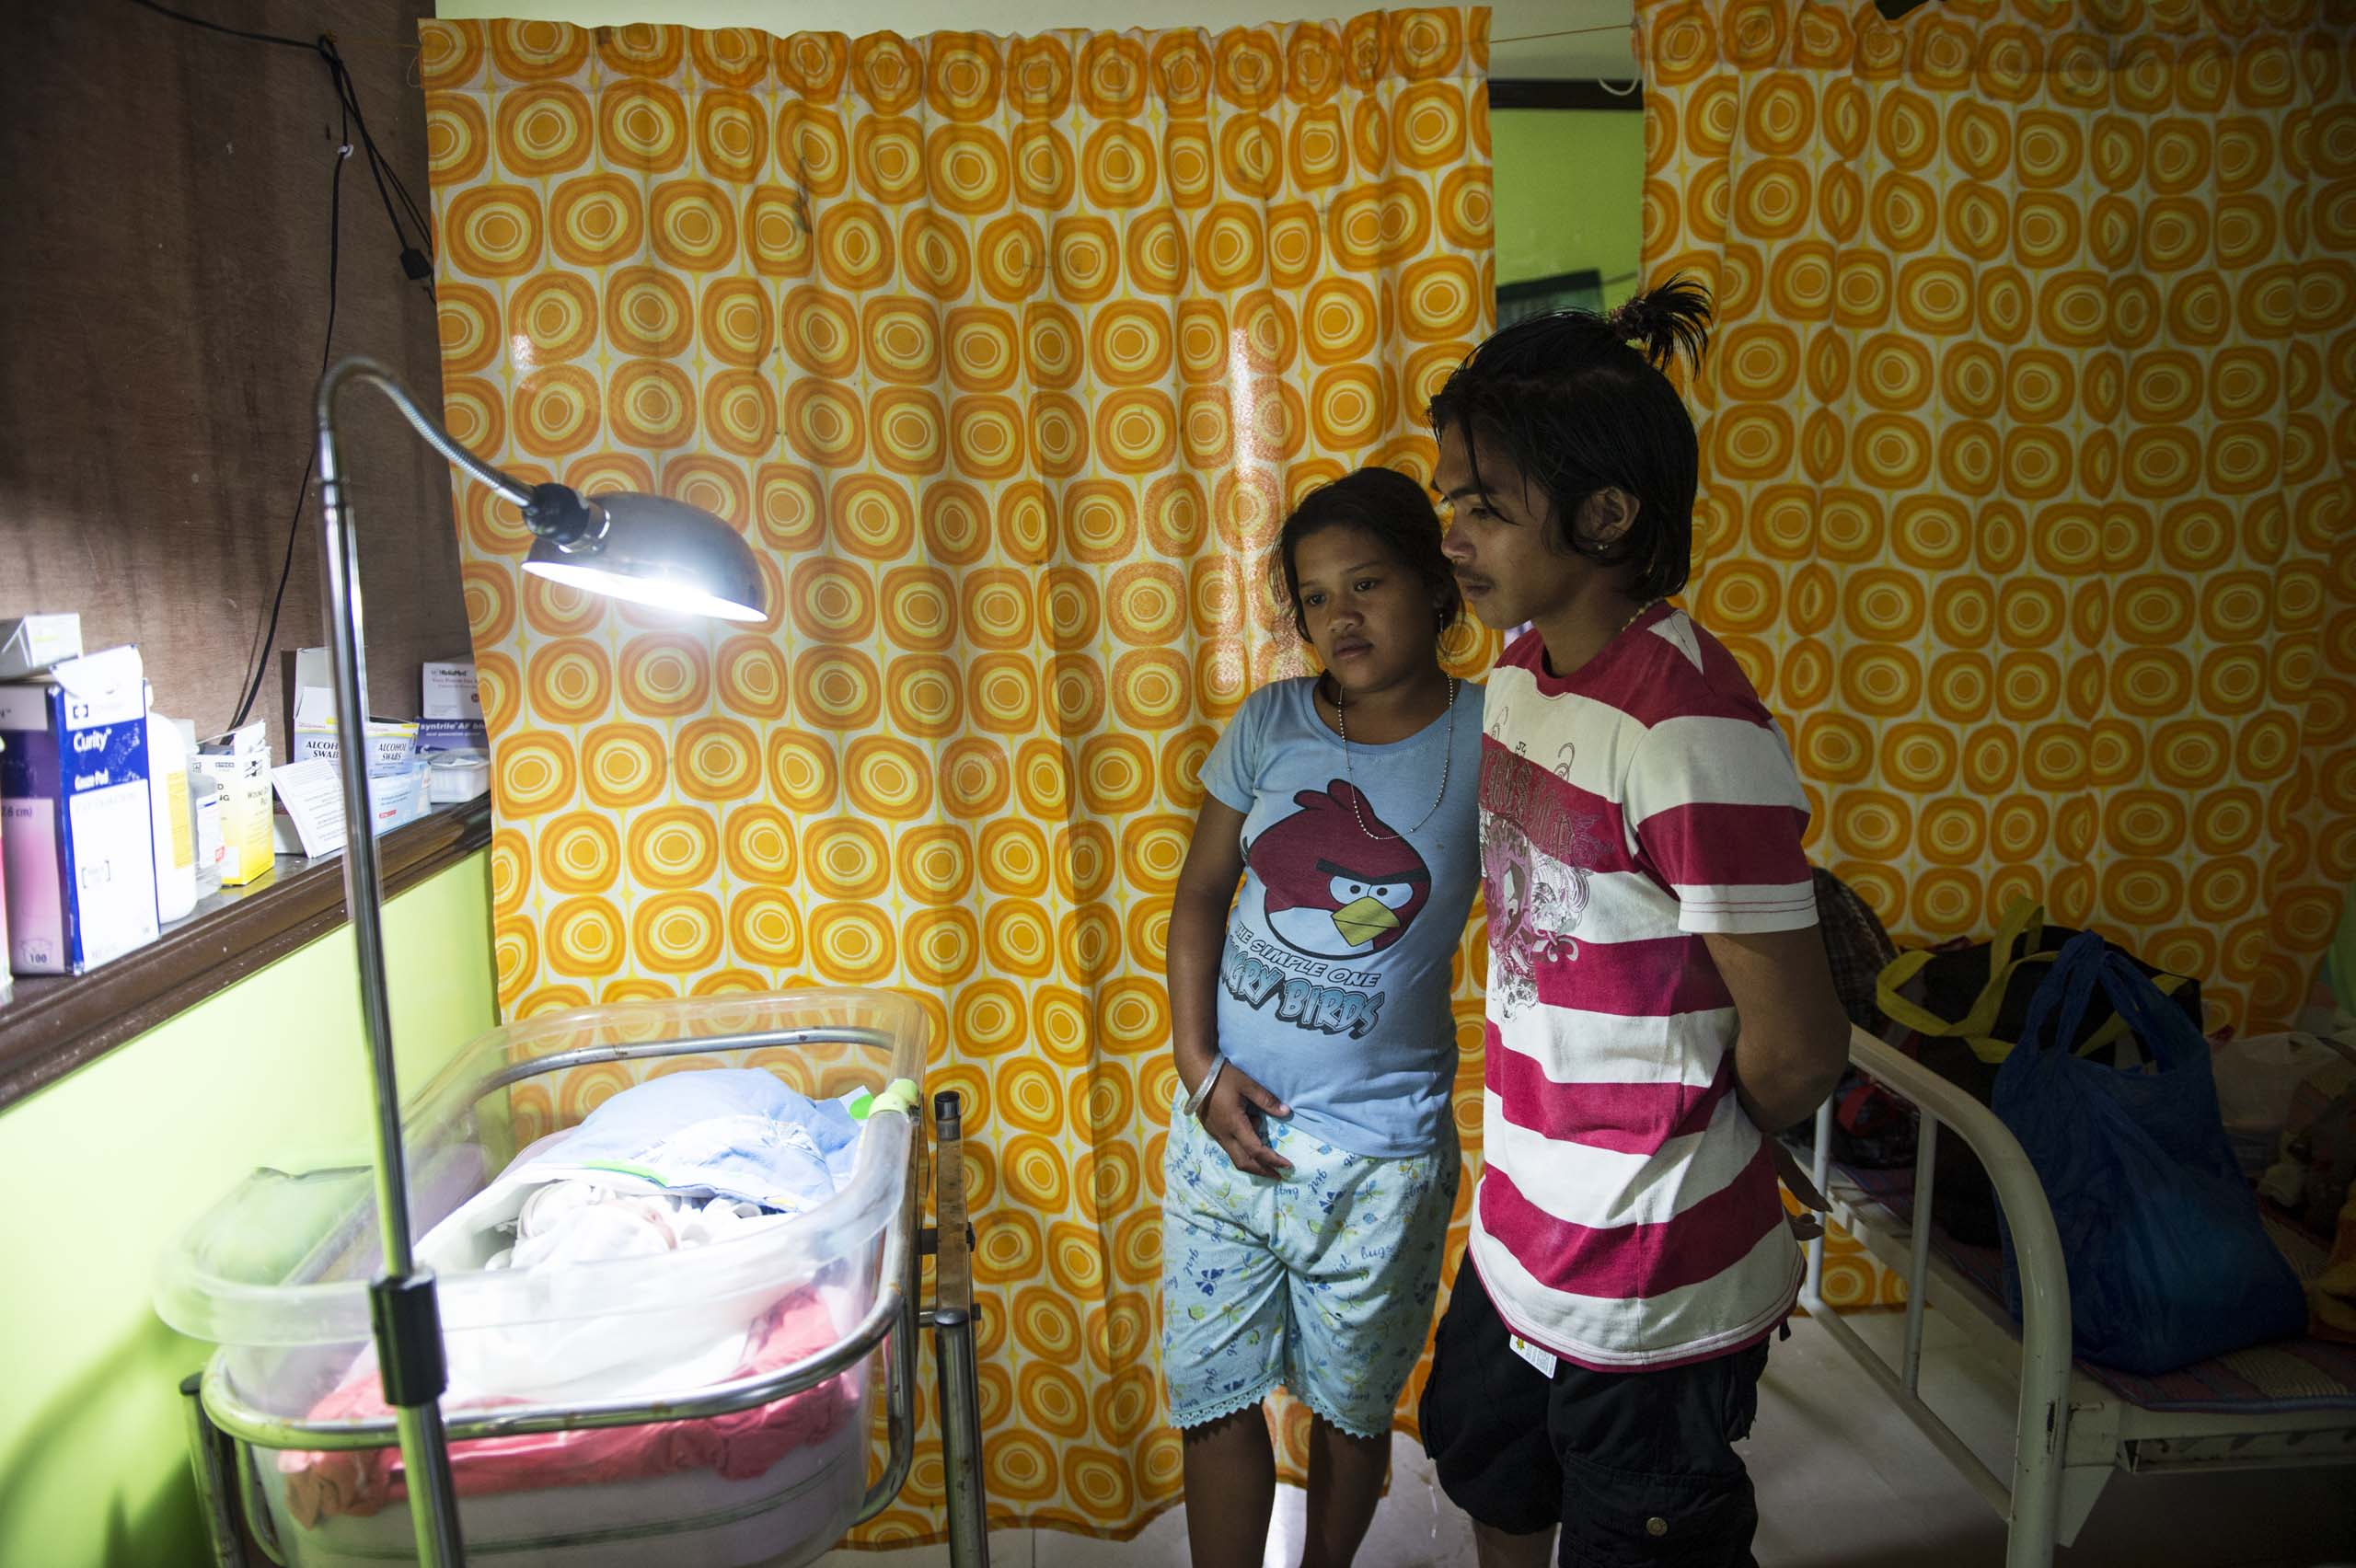 Jan.11, 2014: Analyn Pesado and Ryan Bacate watch over their new born son at the clinic in Tolosa, in the Philippines.